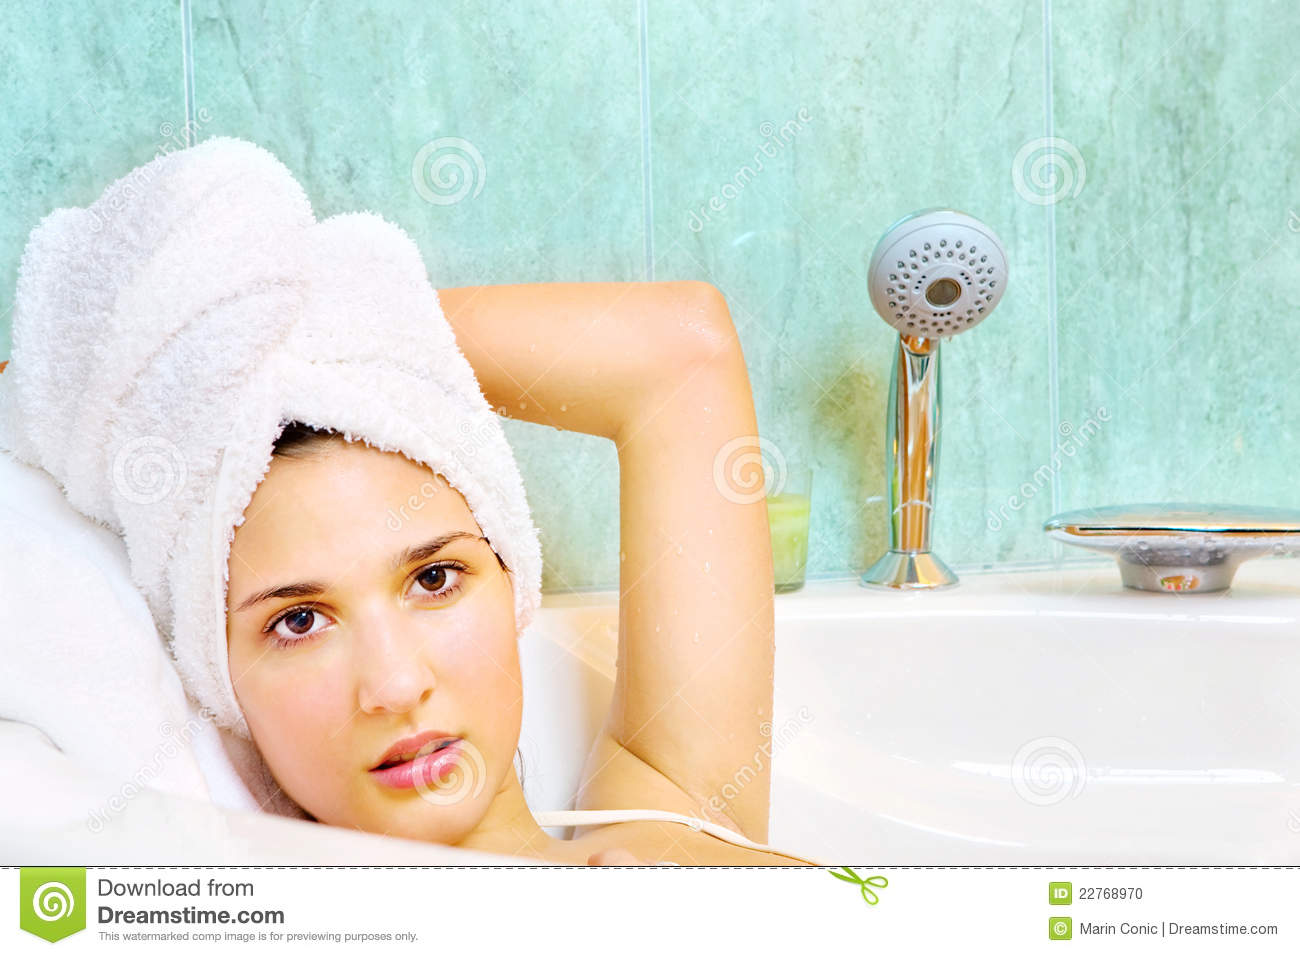 Woman With Towel On Head In The Bathtub Stock Photo